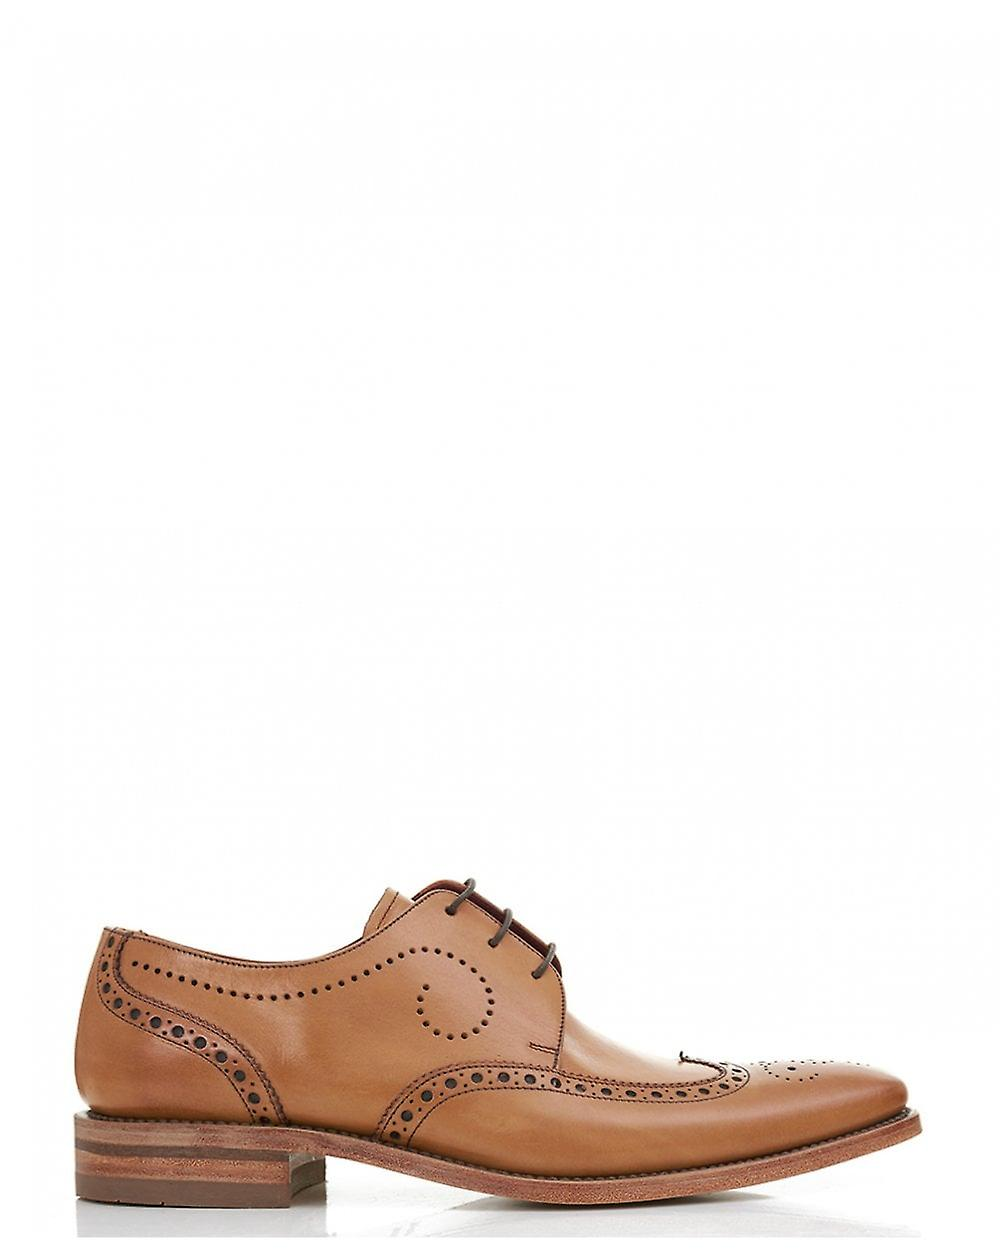 Loake Punch Detail Leather Shoes